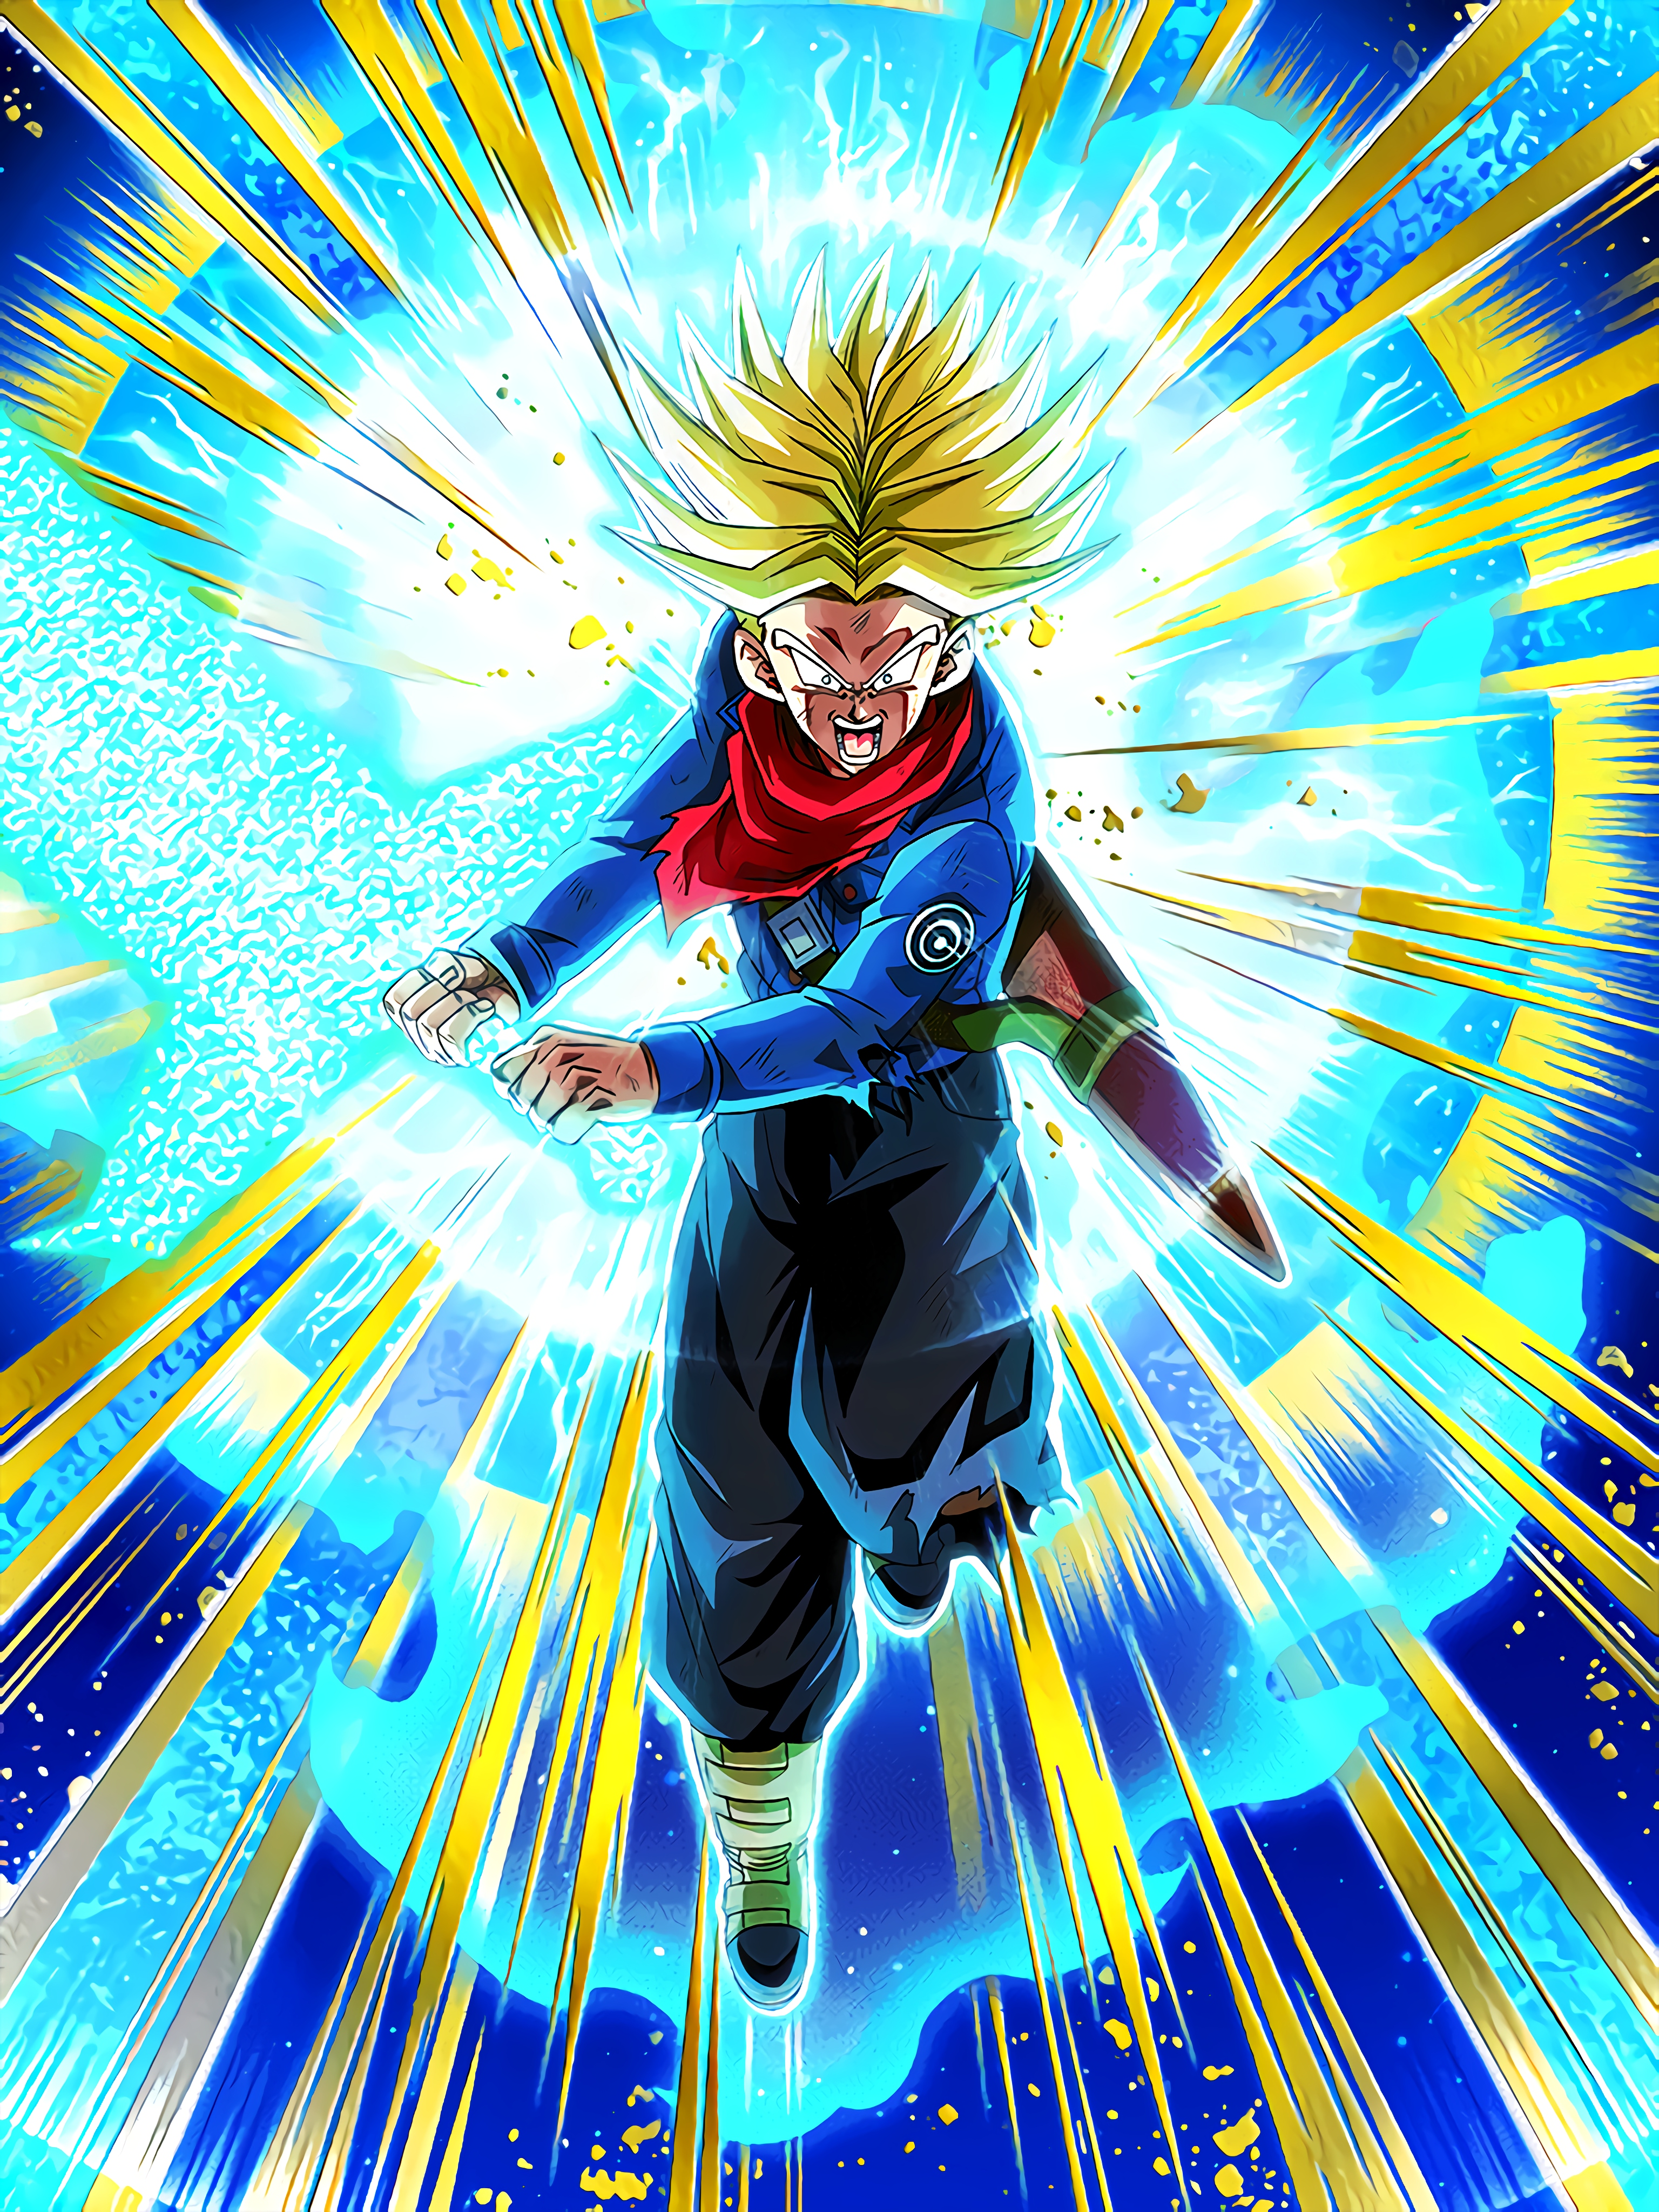 Strong Will to Protect the Future Super Saiyan Trunks 2 Future Art (Dragon Ball Z Dokkan Battle).jpg